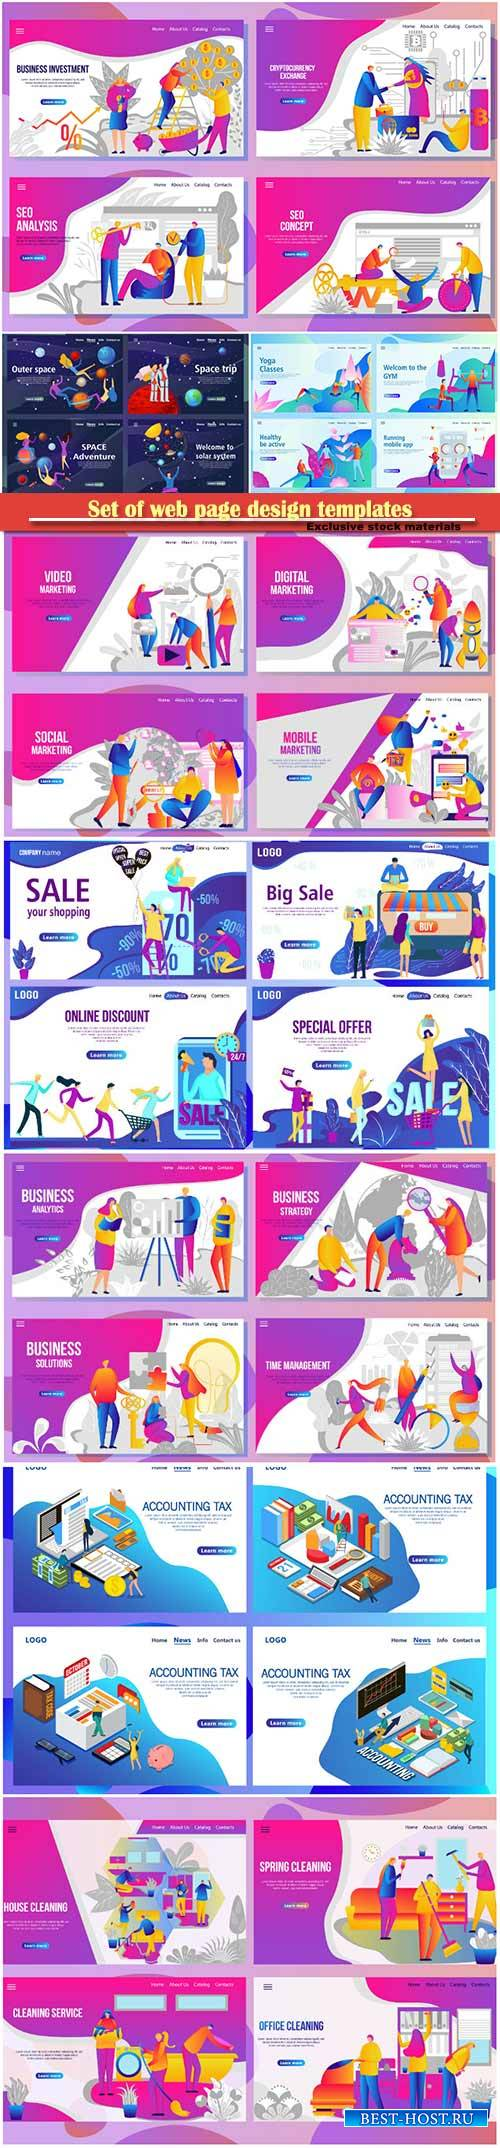 Set of web page design templates for business, vector illustration concepts ...